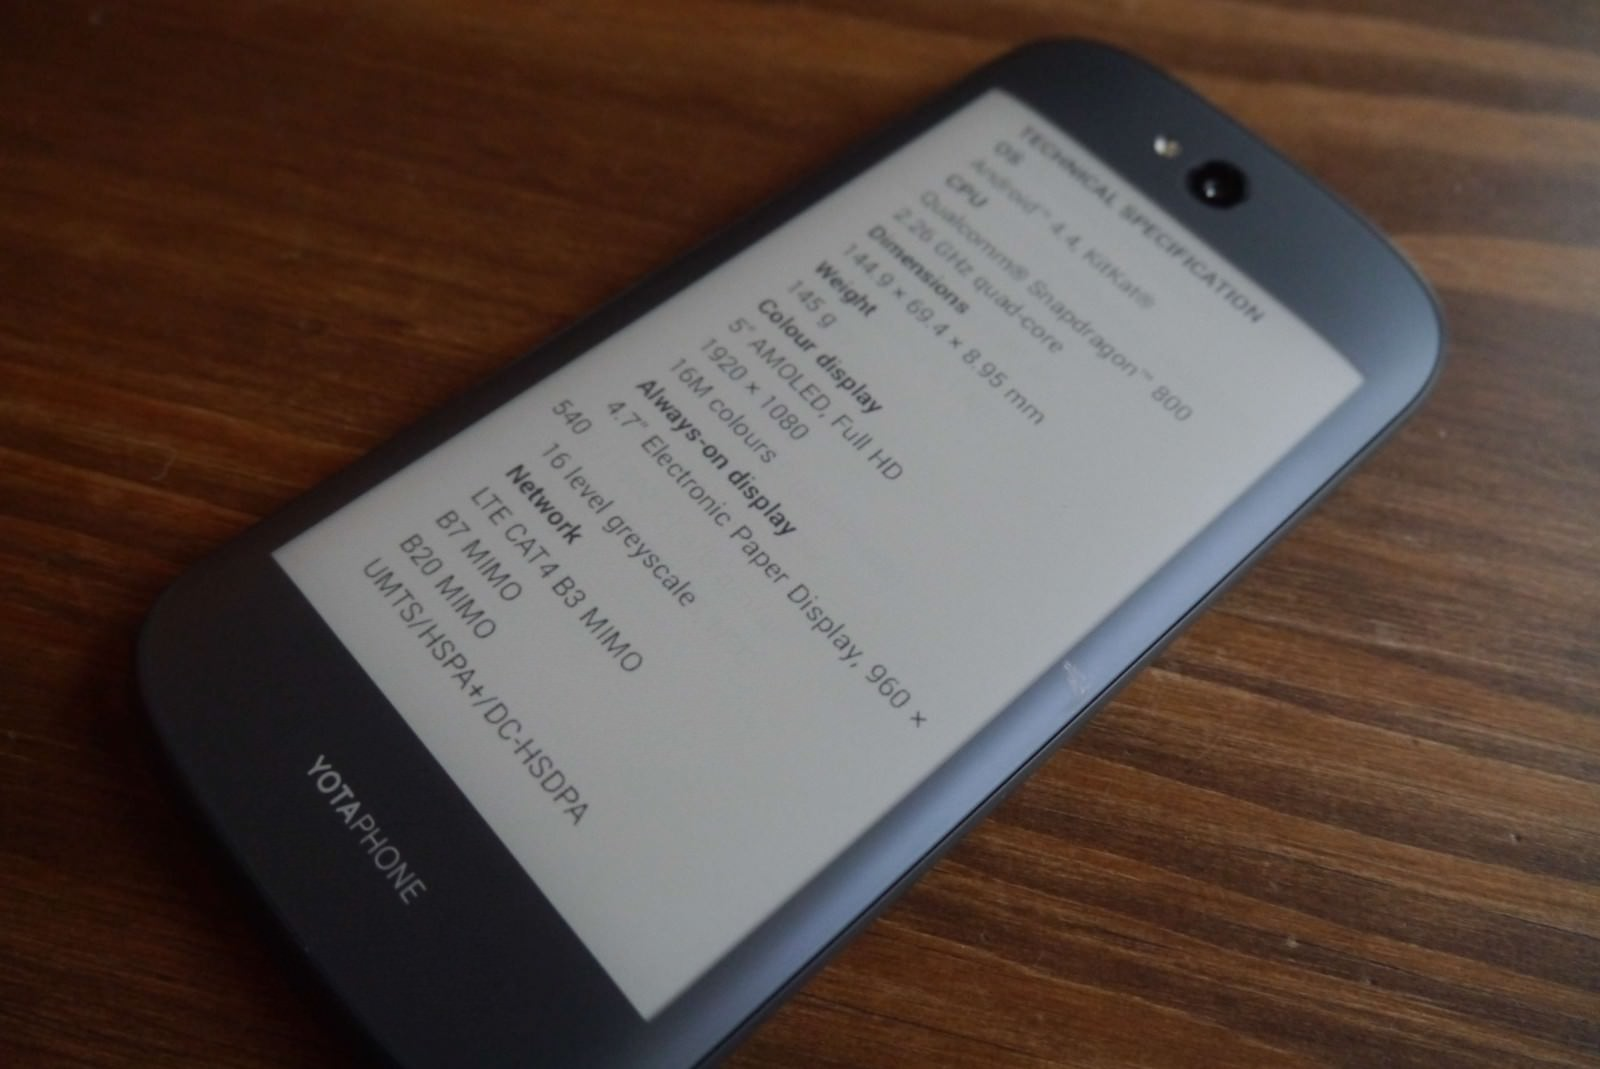 yotaphone-2-review-e-ink-weboo-co-14